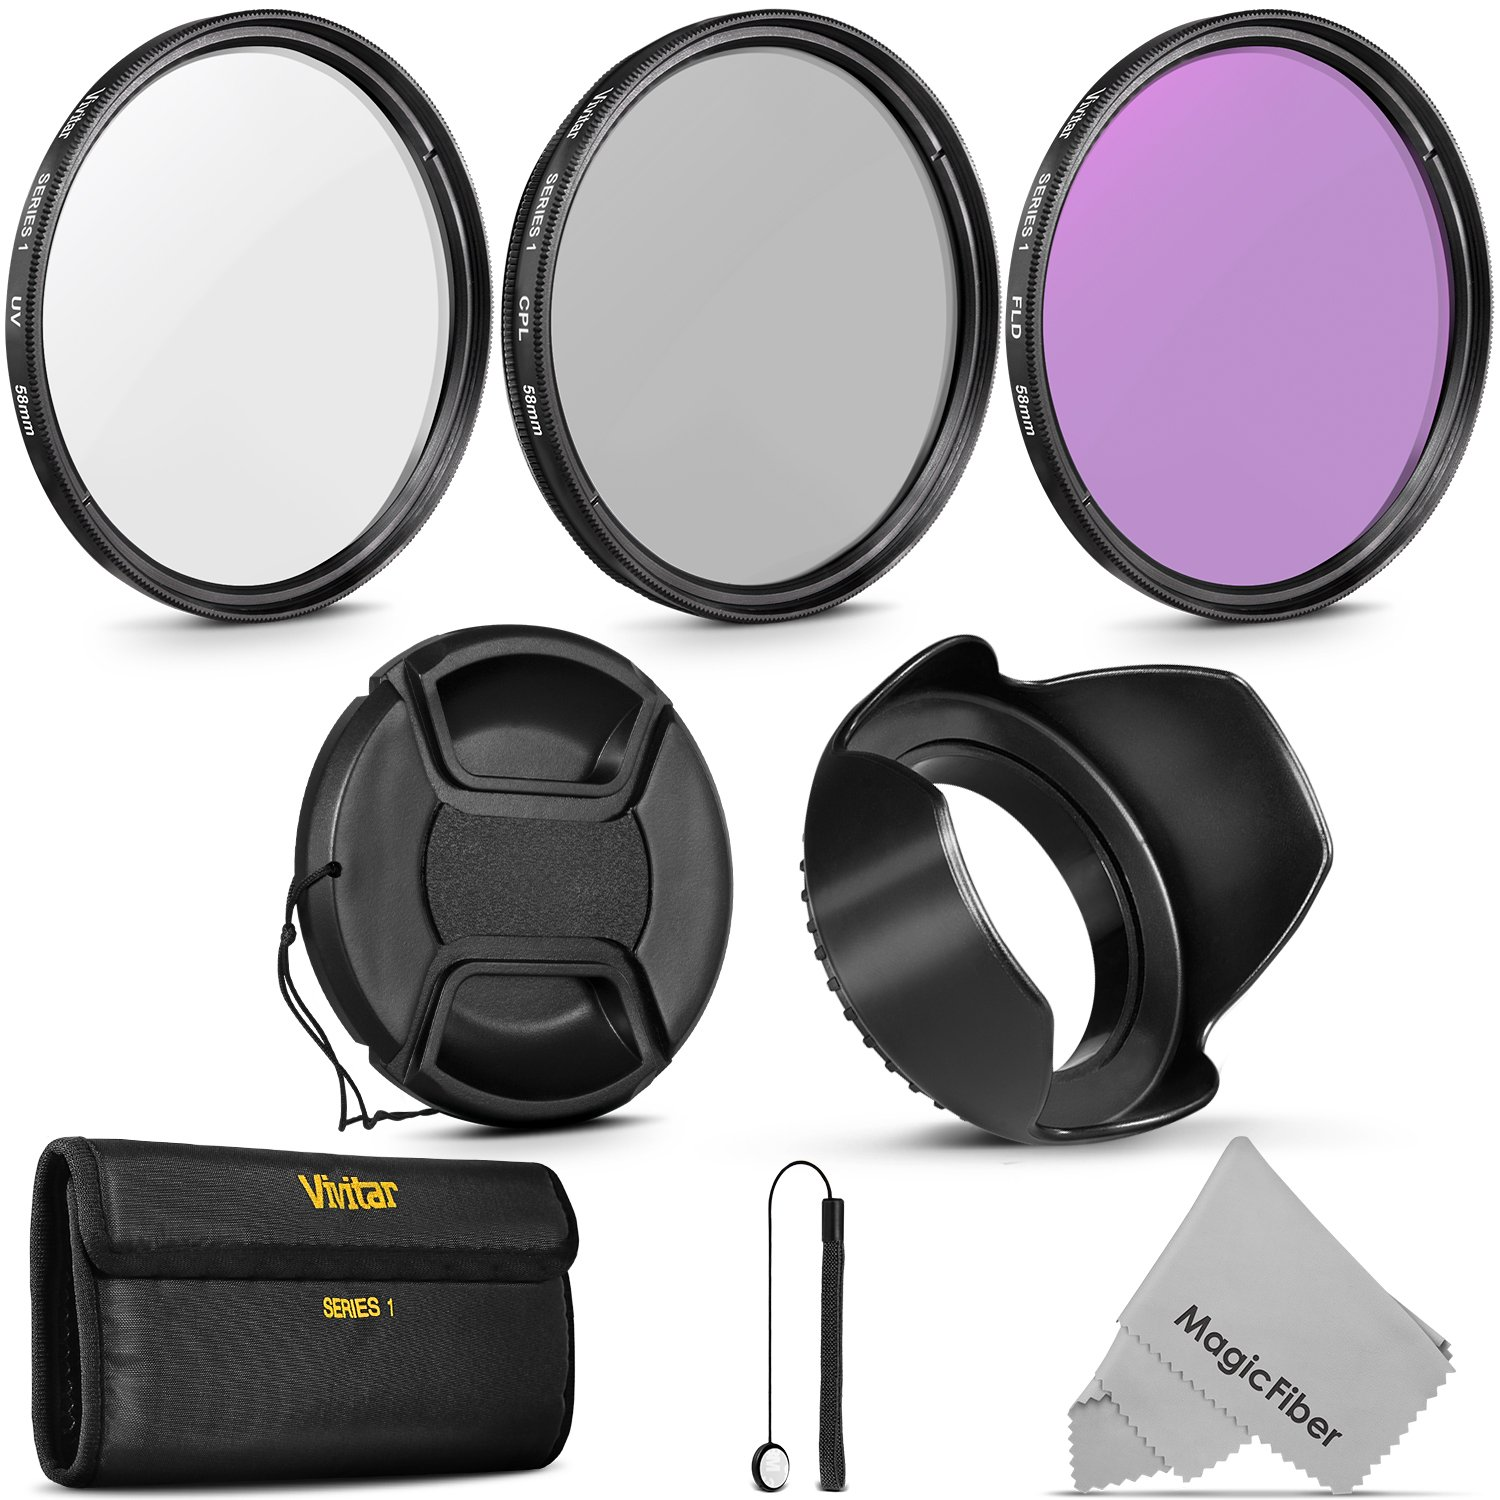 58MM Professional Lens Filter Accessory Kit (Vivitar Filter Kit (UV, CPL, FLD) + Carry Pouch + Tulip Lens Hood + Snap-On Lens Cap w/ Cap Keeper Leash + MagicFiber Microfiber Lens Cleaning Cloth) by Goja